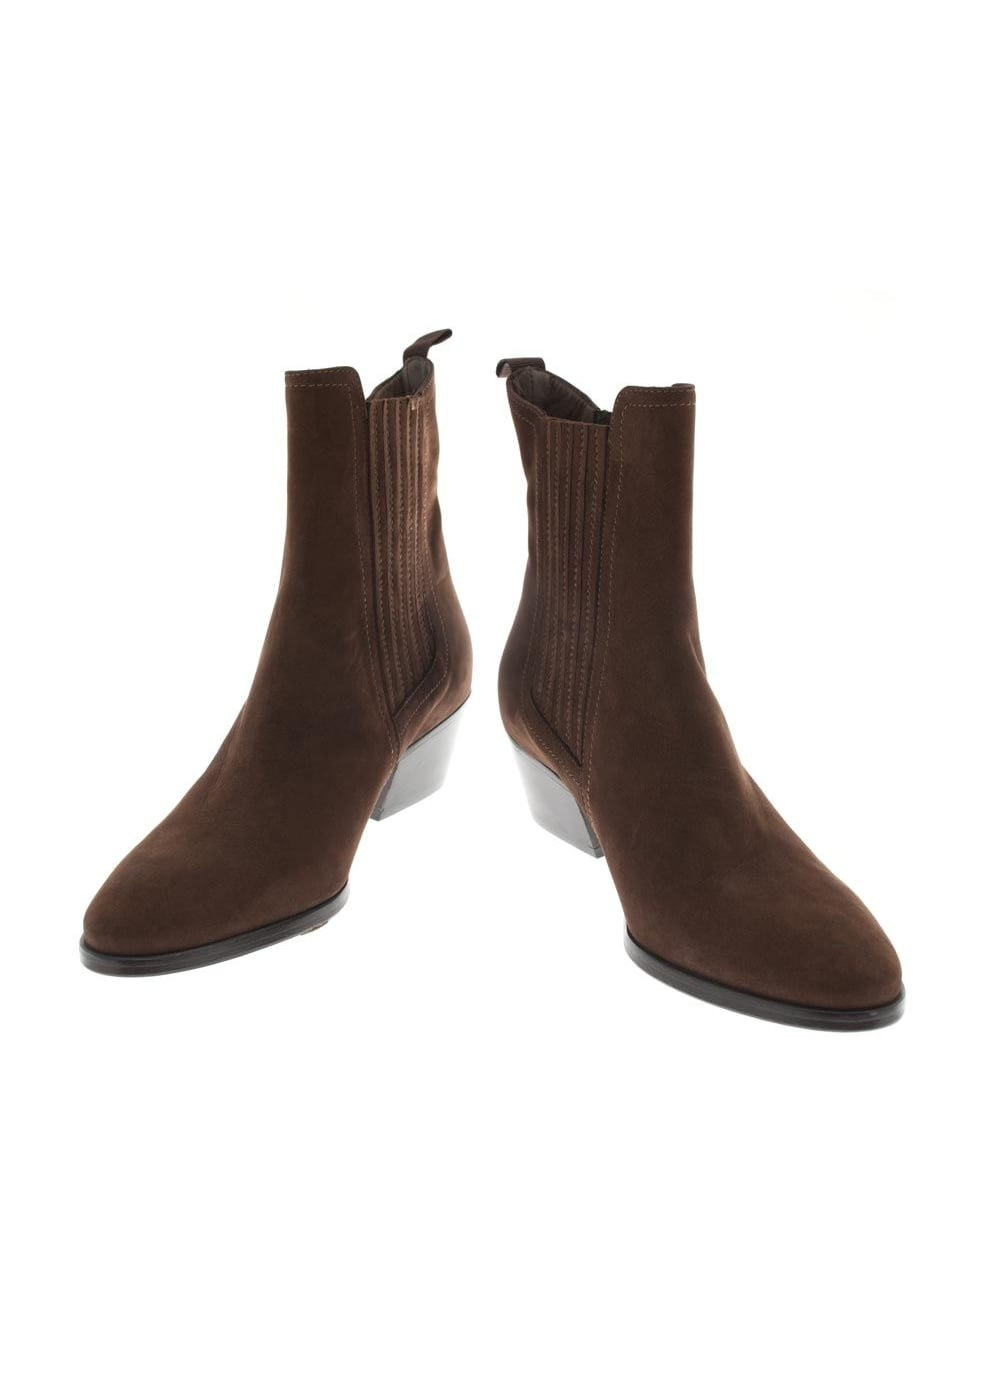 Elia B Well Heeled Boots  Large Image